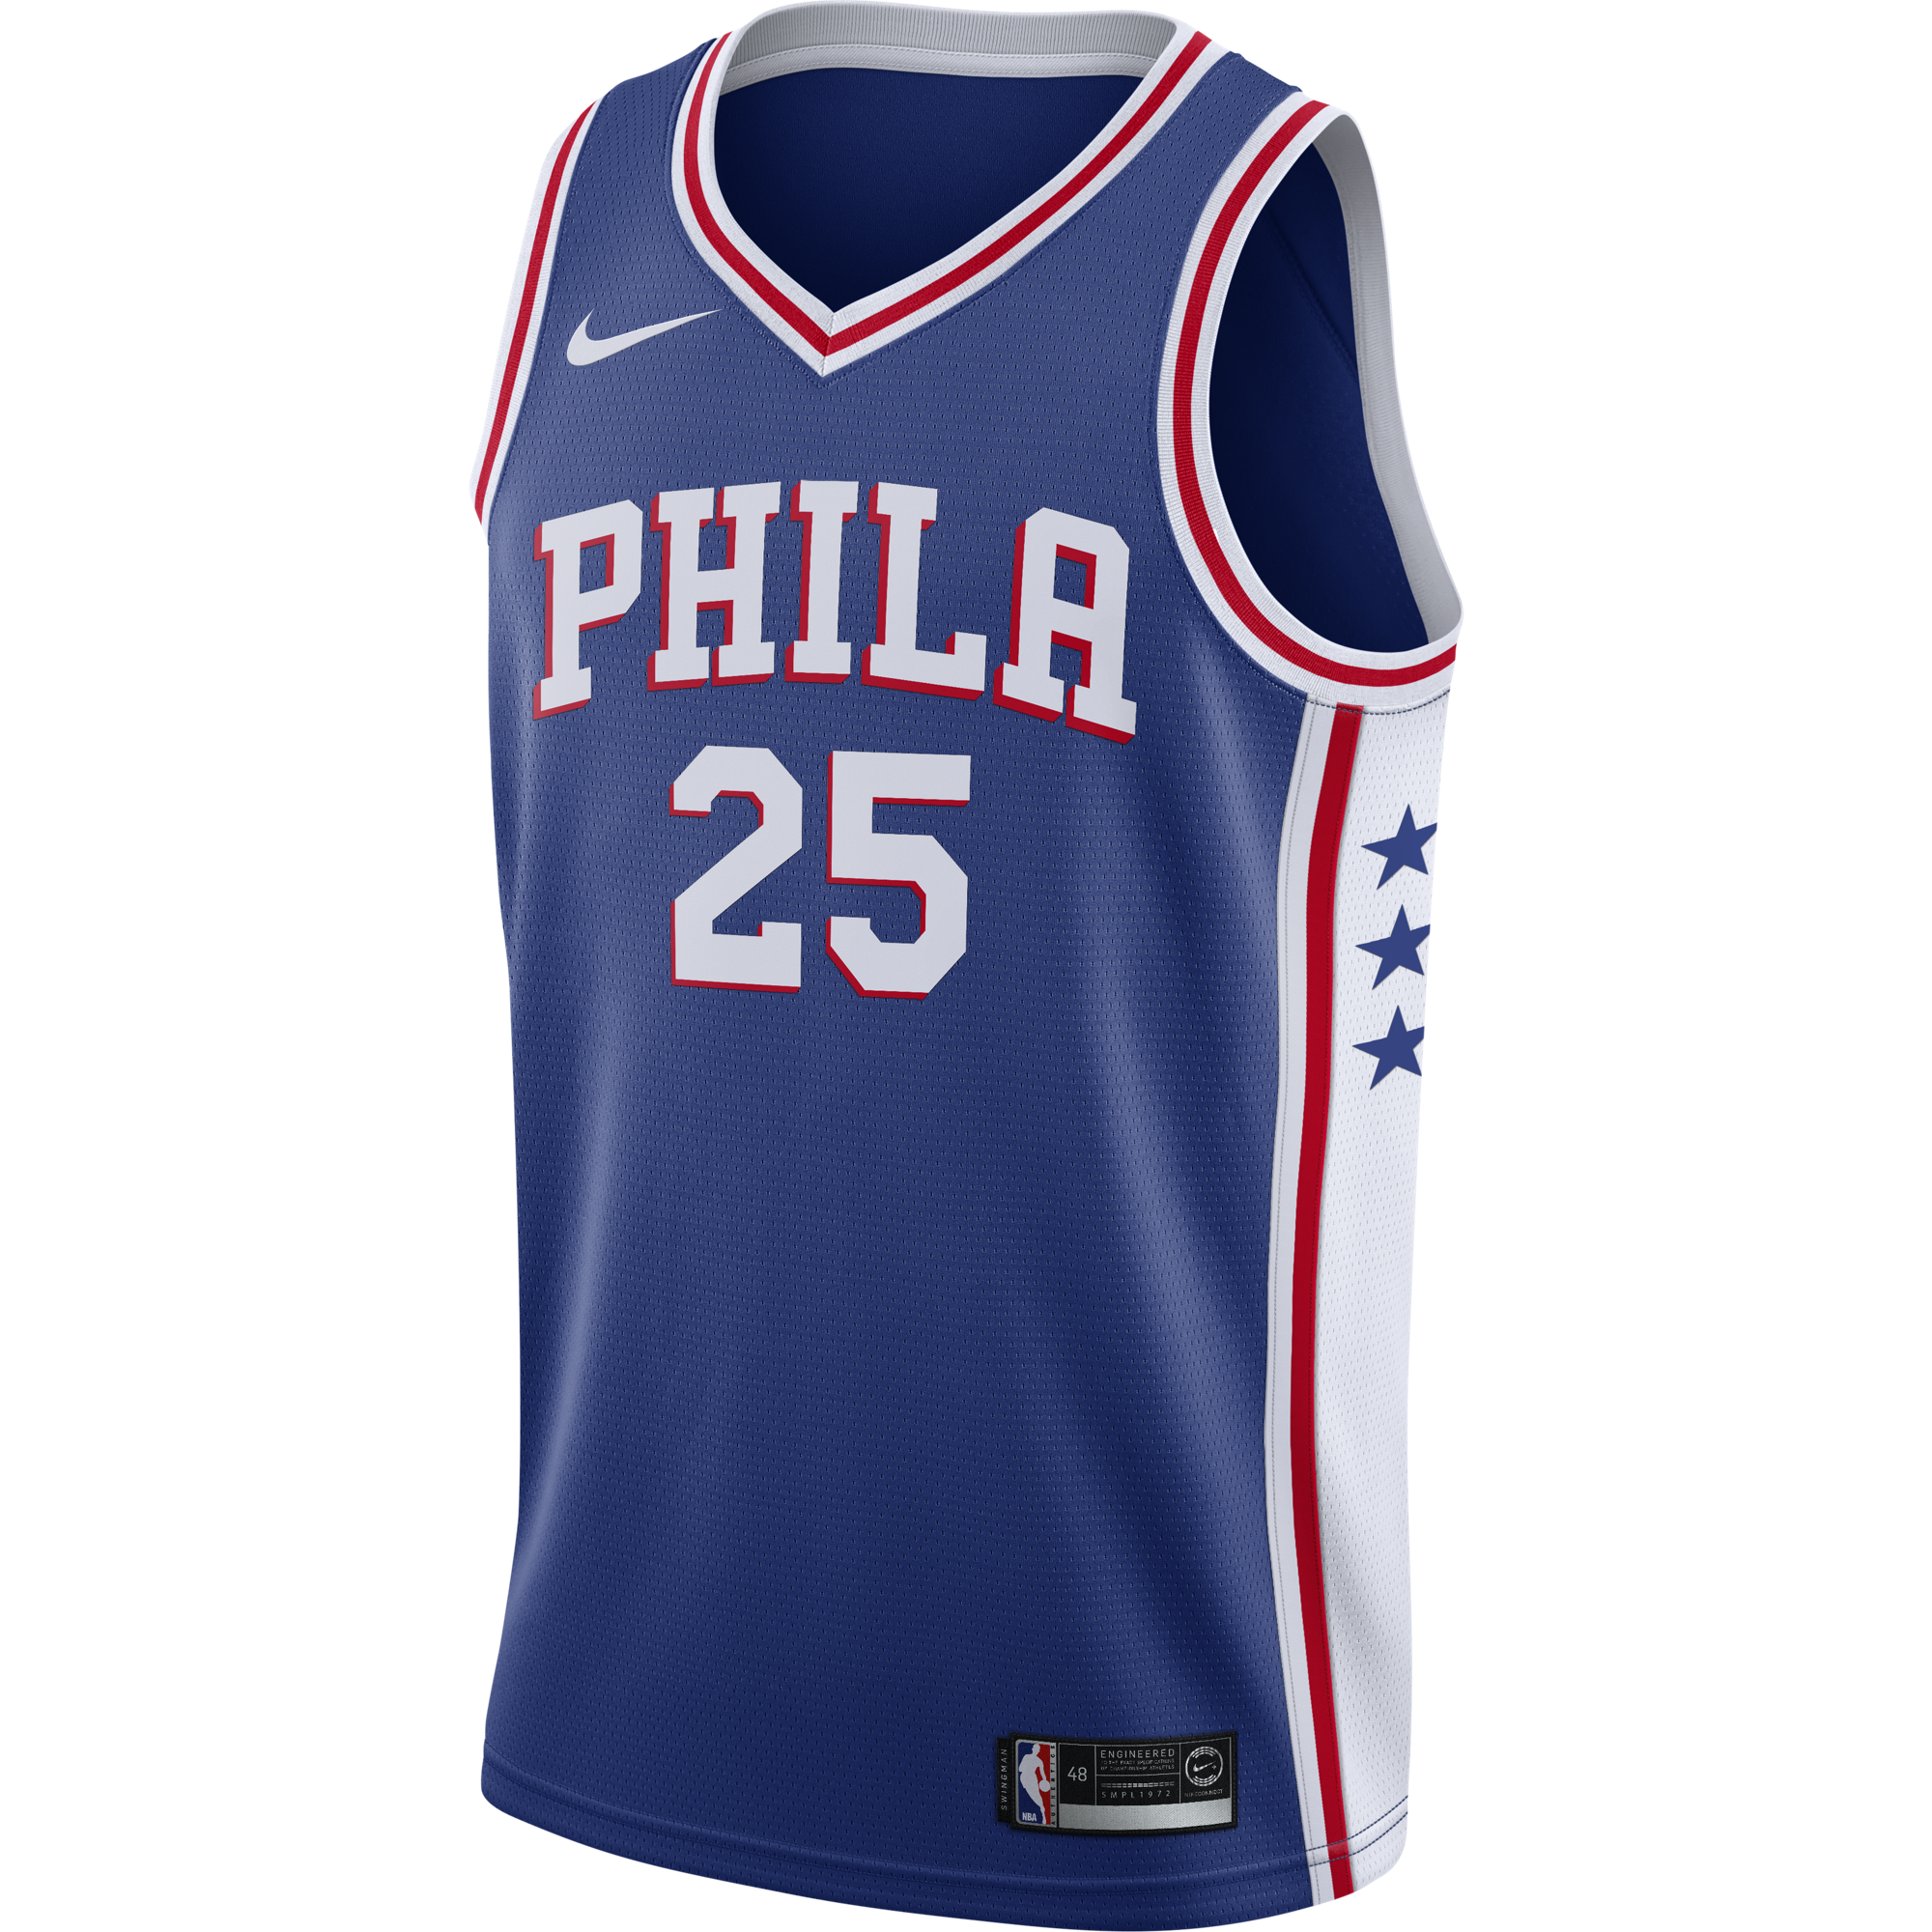 NIKE NBA PHILADELPHIA 76ERS BEN SIMMONS SWINGMAN ROAD JERSEY